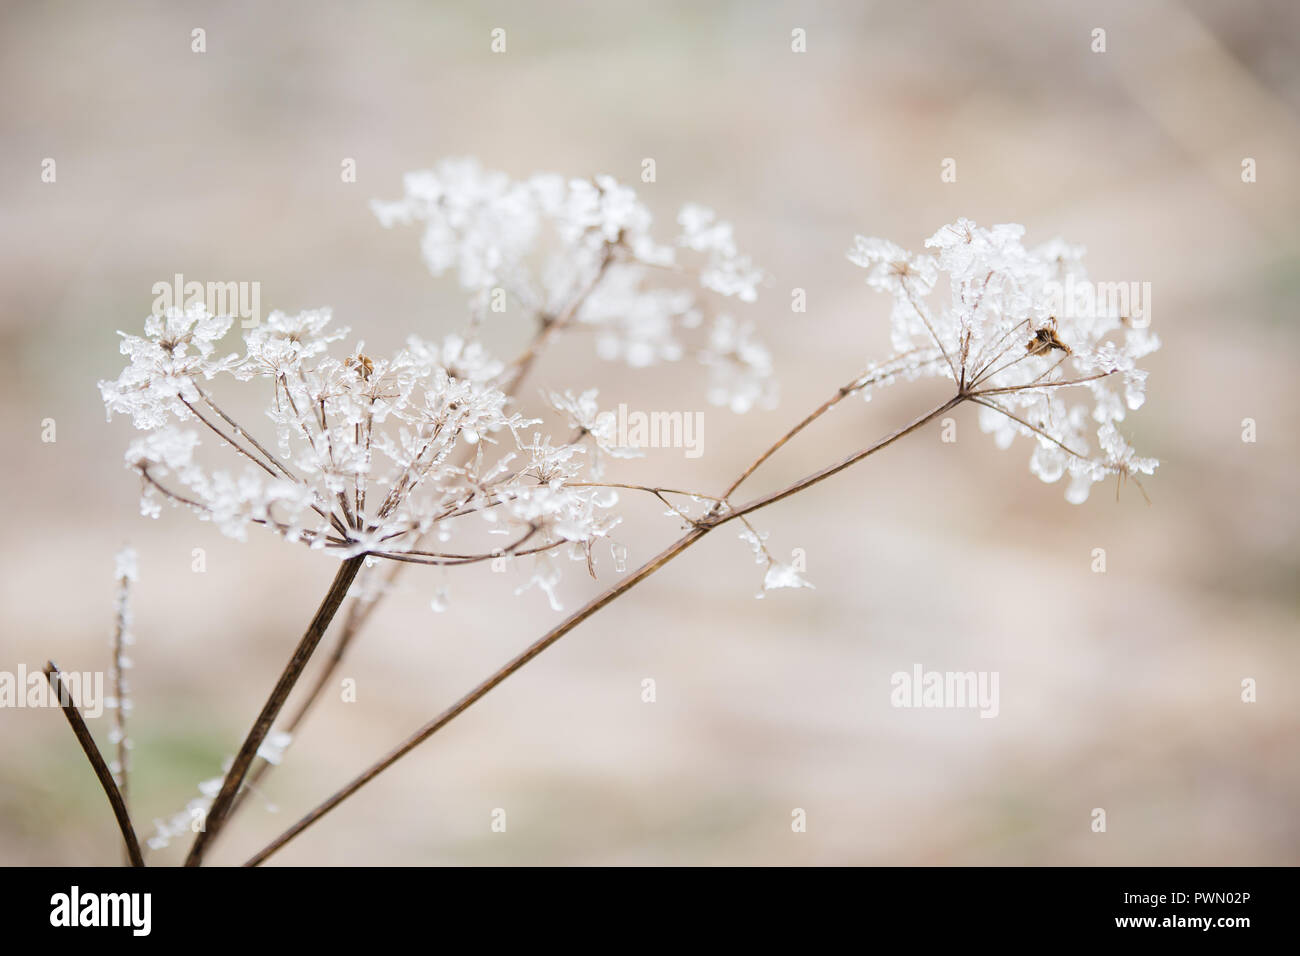 Beautiful winter white flowers stock photos beautiful winter white queen annes lace flowers covered in beautiful white icy frost on a winter day izmirmasajfo